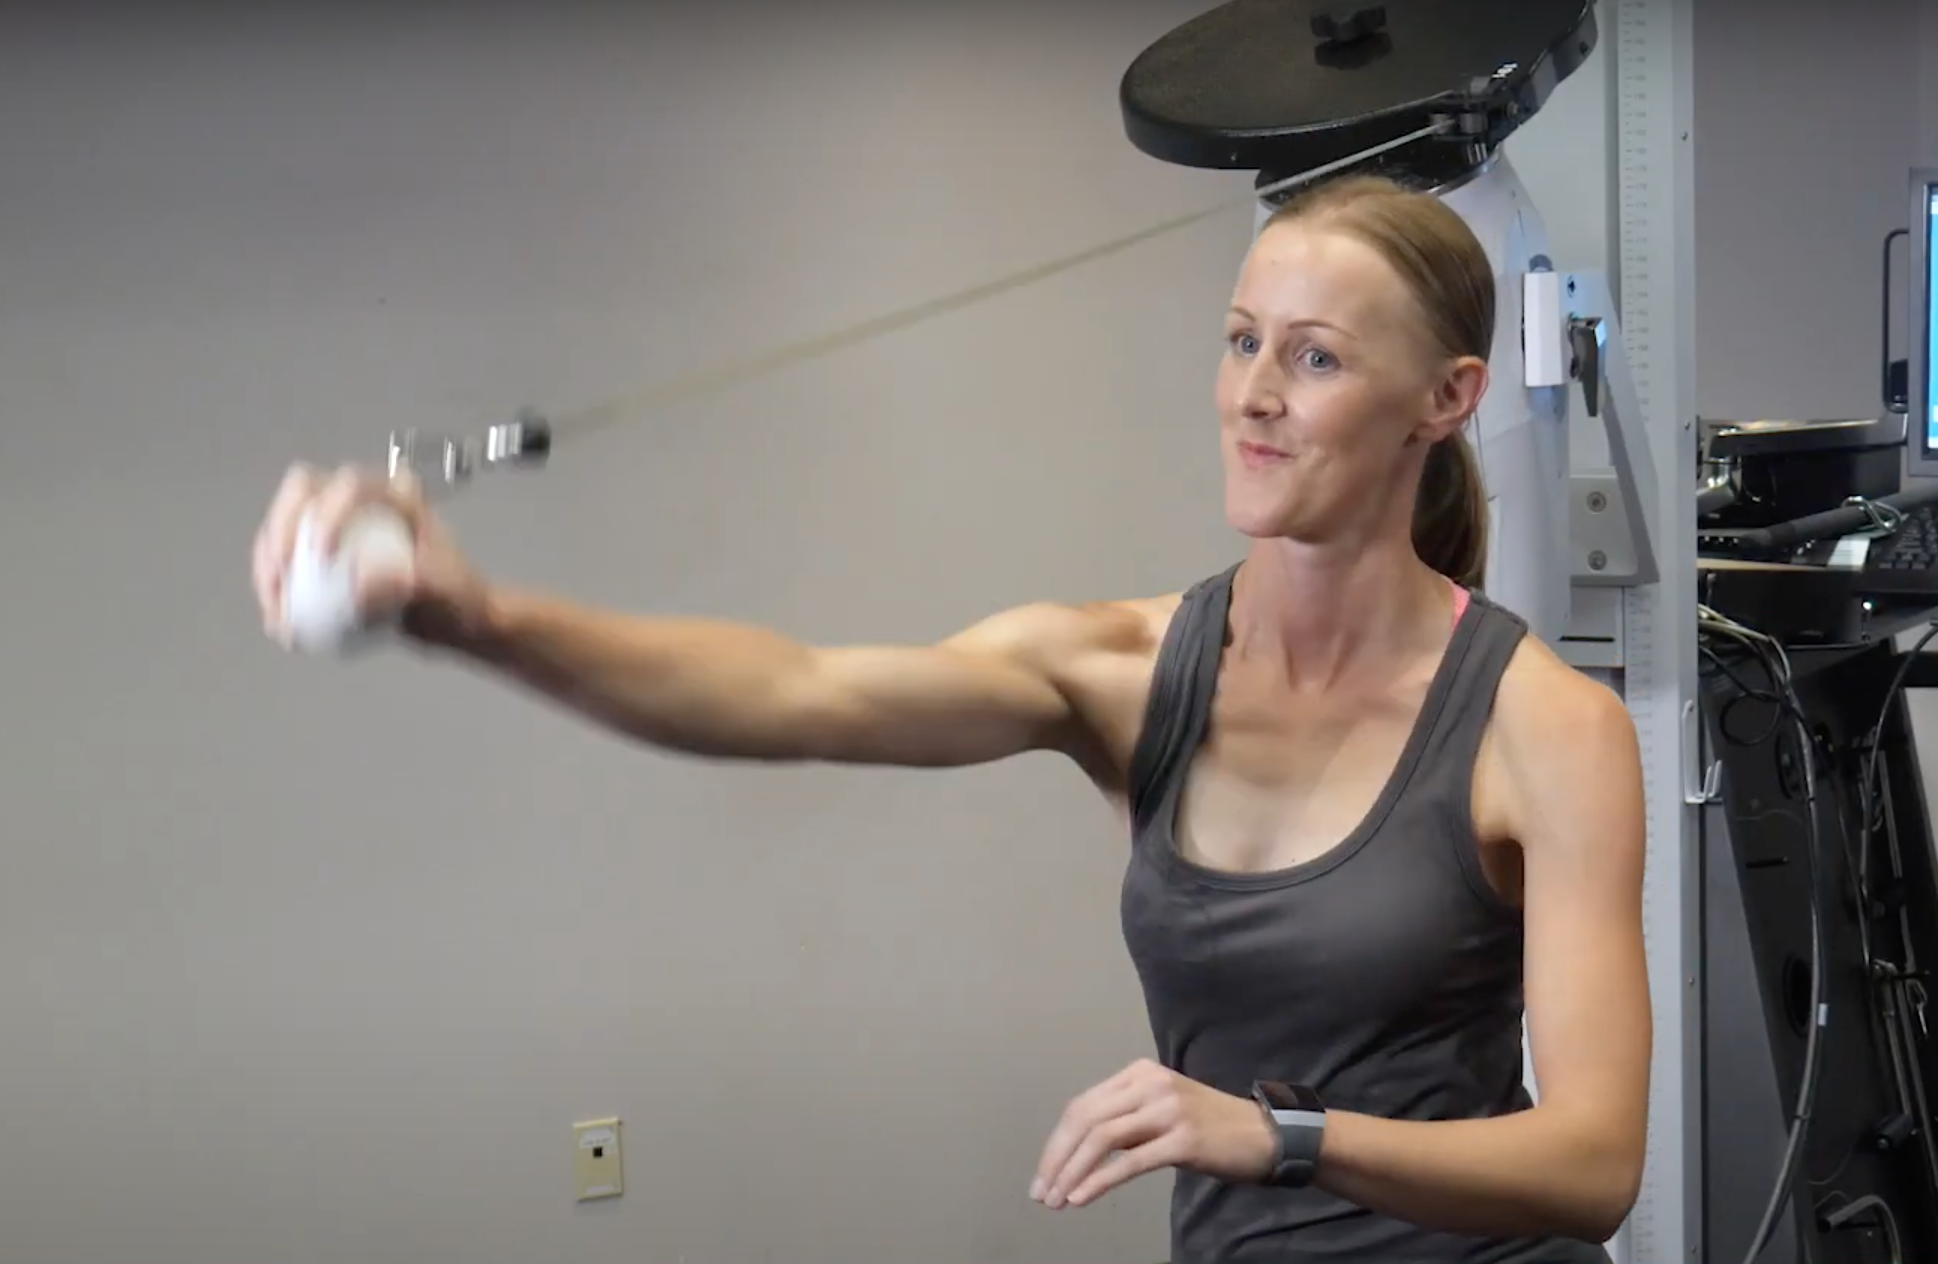 shoulder-exercise-throwing-bte-primusrs